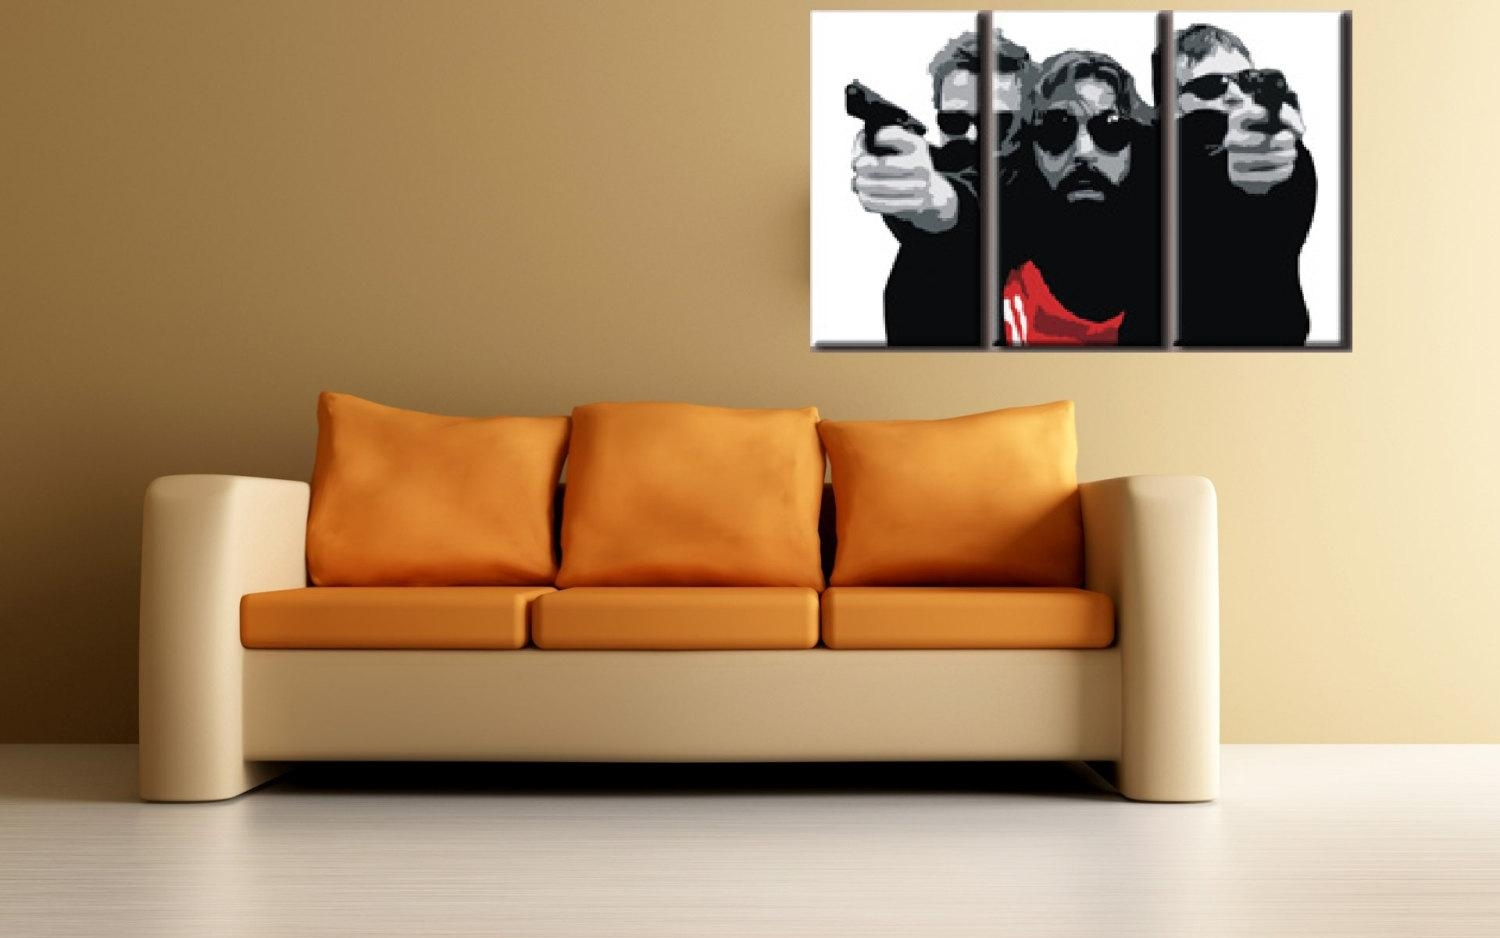 Boondock Saints Hand Painted Canvas Acrylic Pop Art Oil Inside Boondock Saints Wall Art (Image 8 of 20)